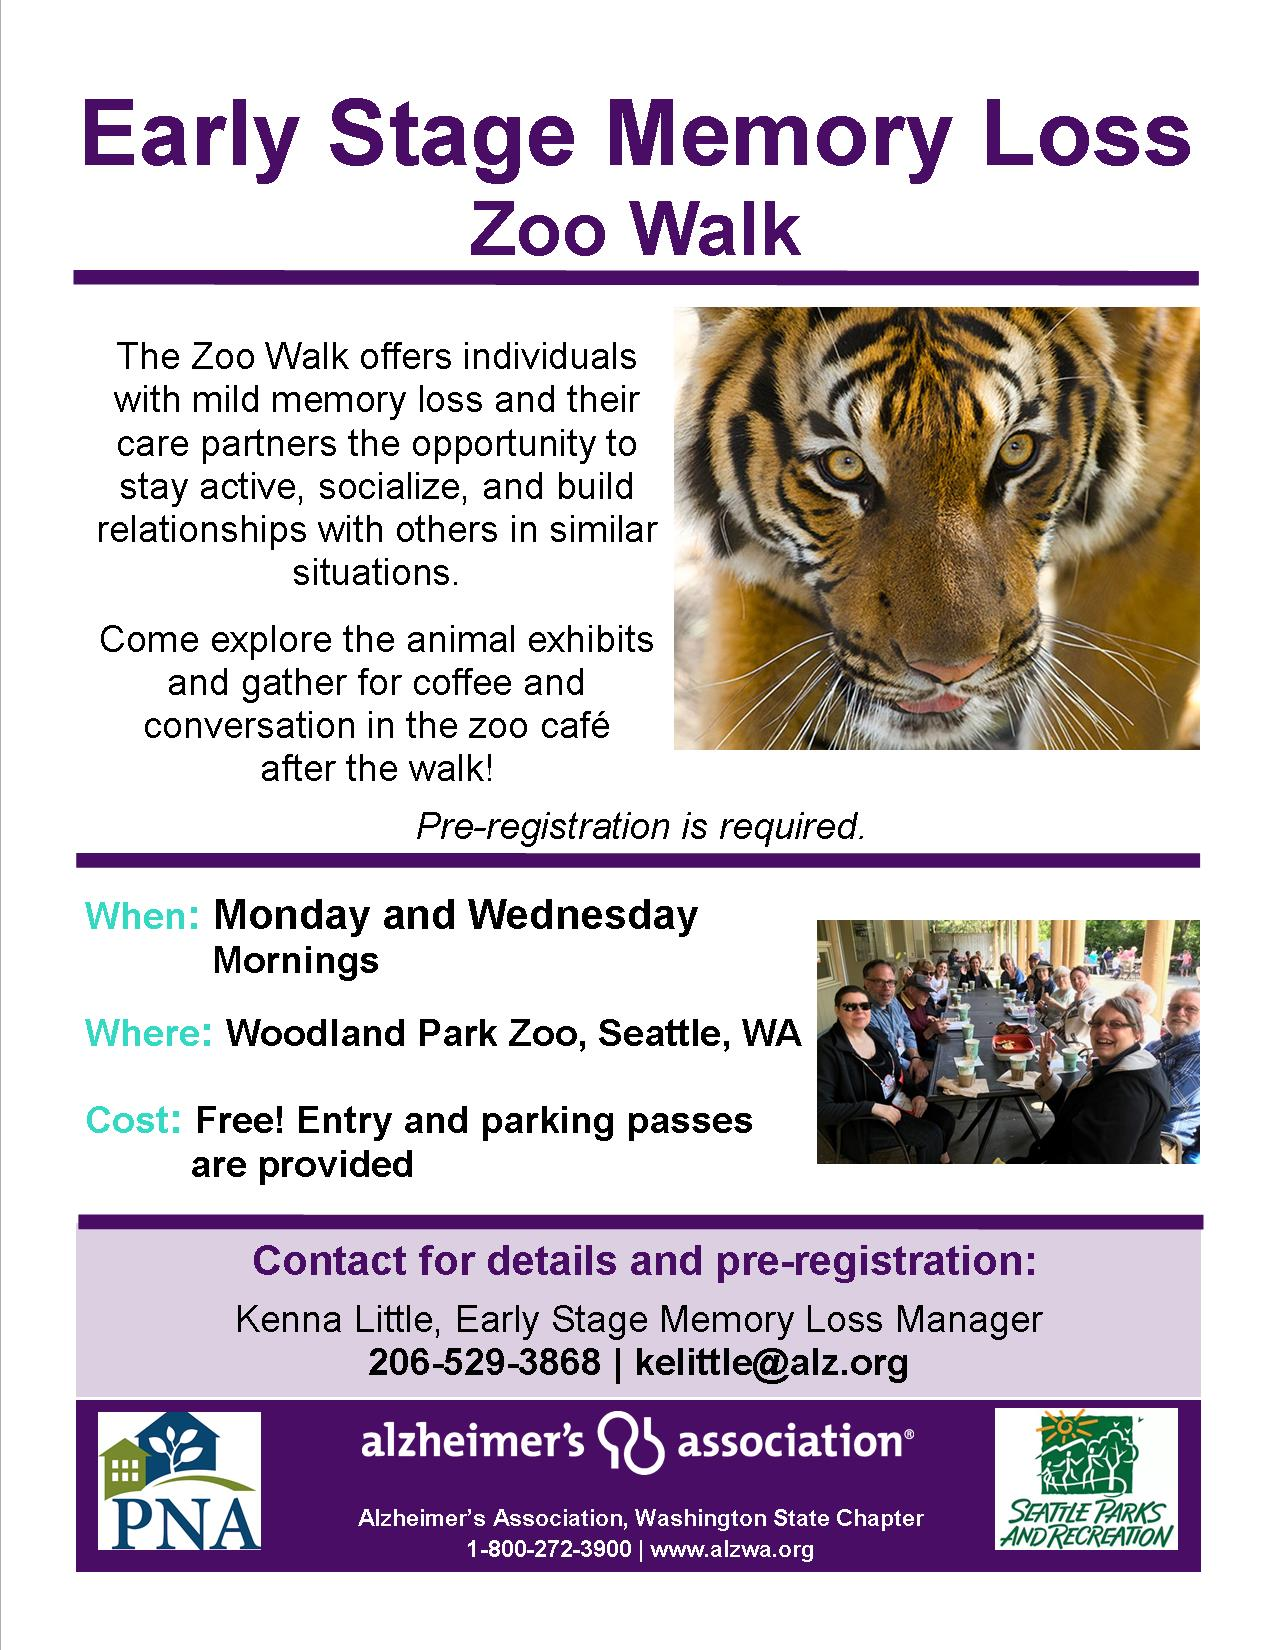 Zoo Walk Flyer-jpg.jpg